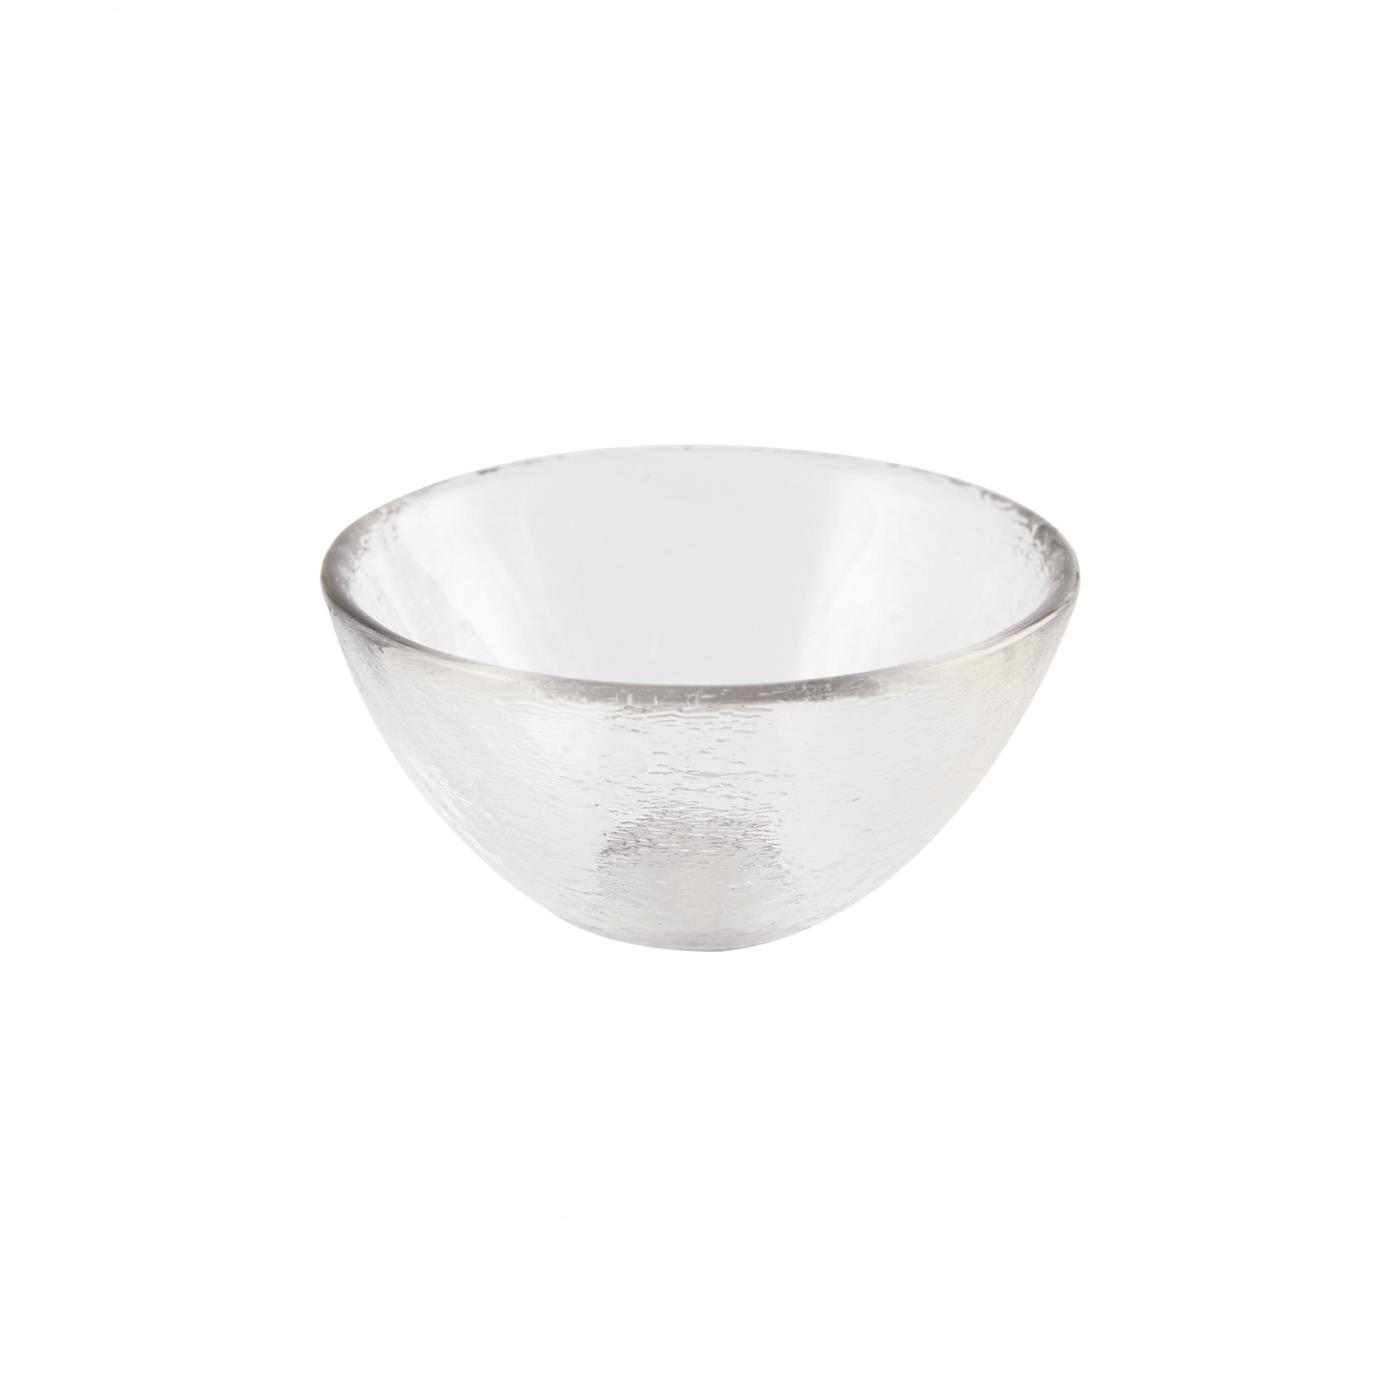 "Glass Dipping Bowl 3.25"" - Clear"